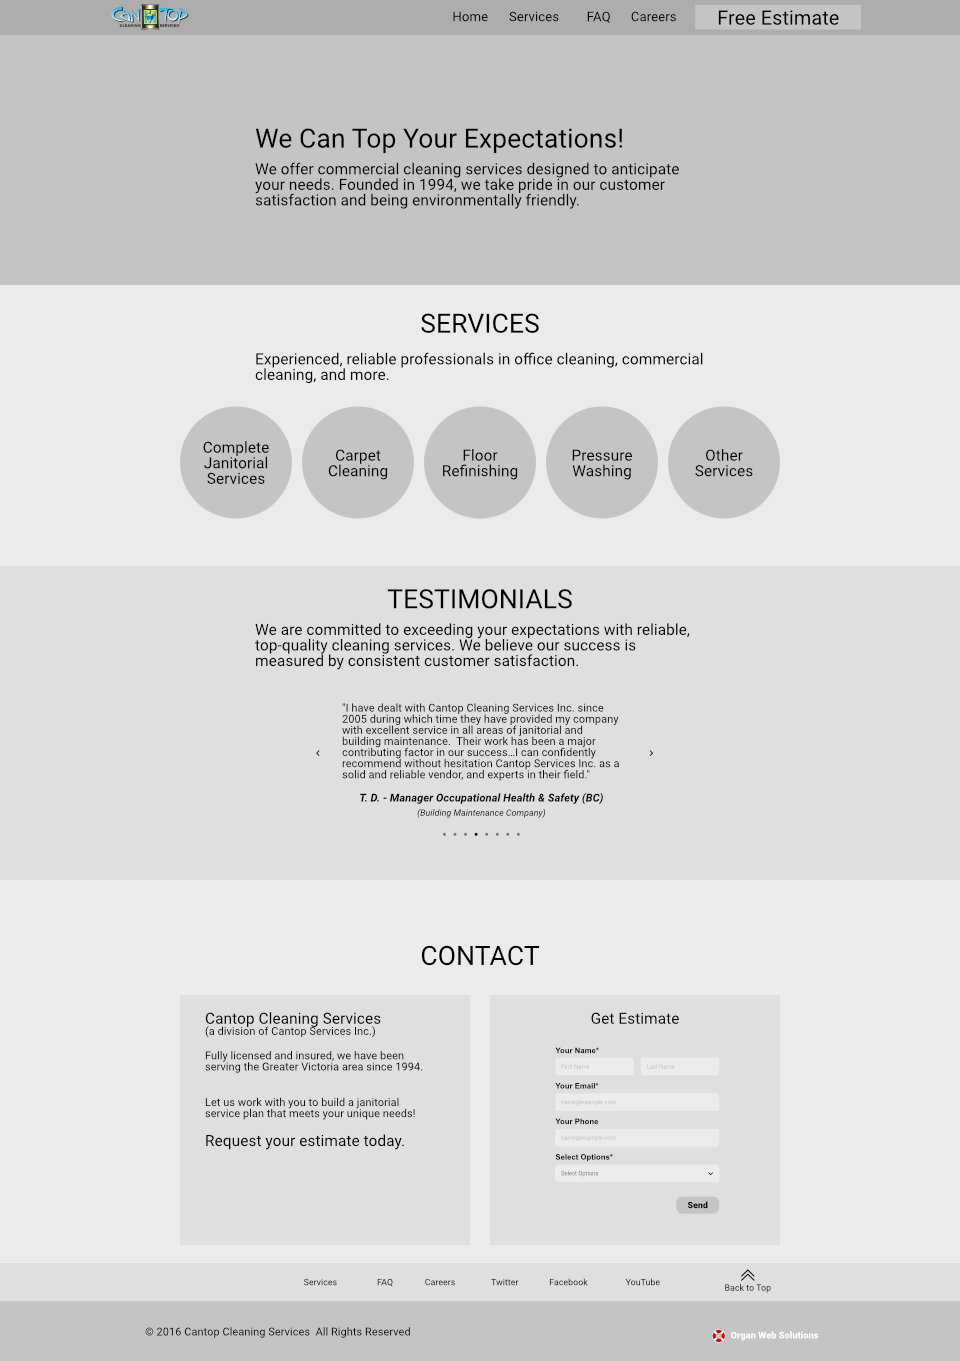 Cantop Cleaning Services Website mockup